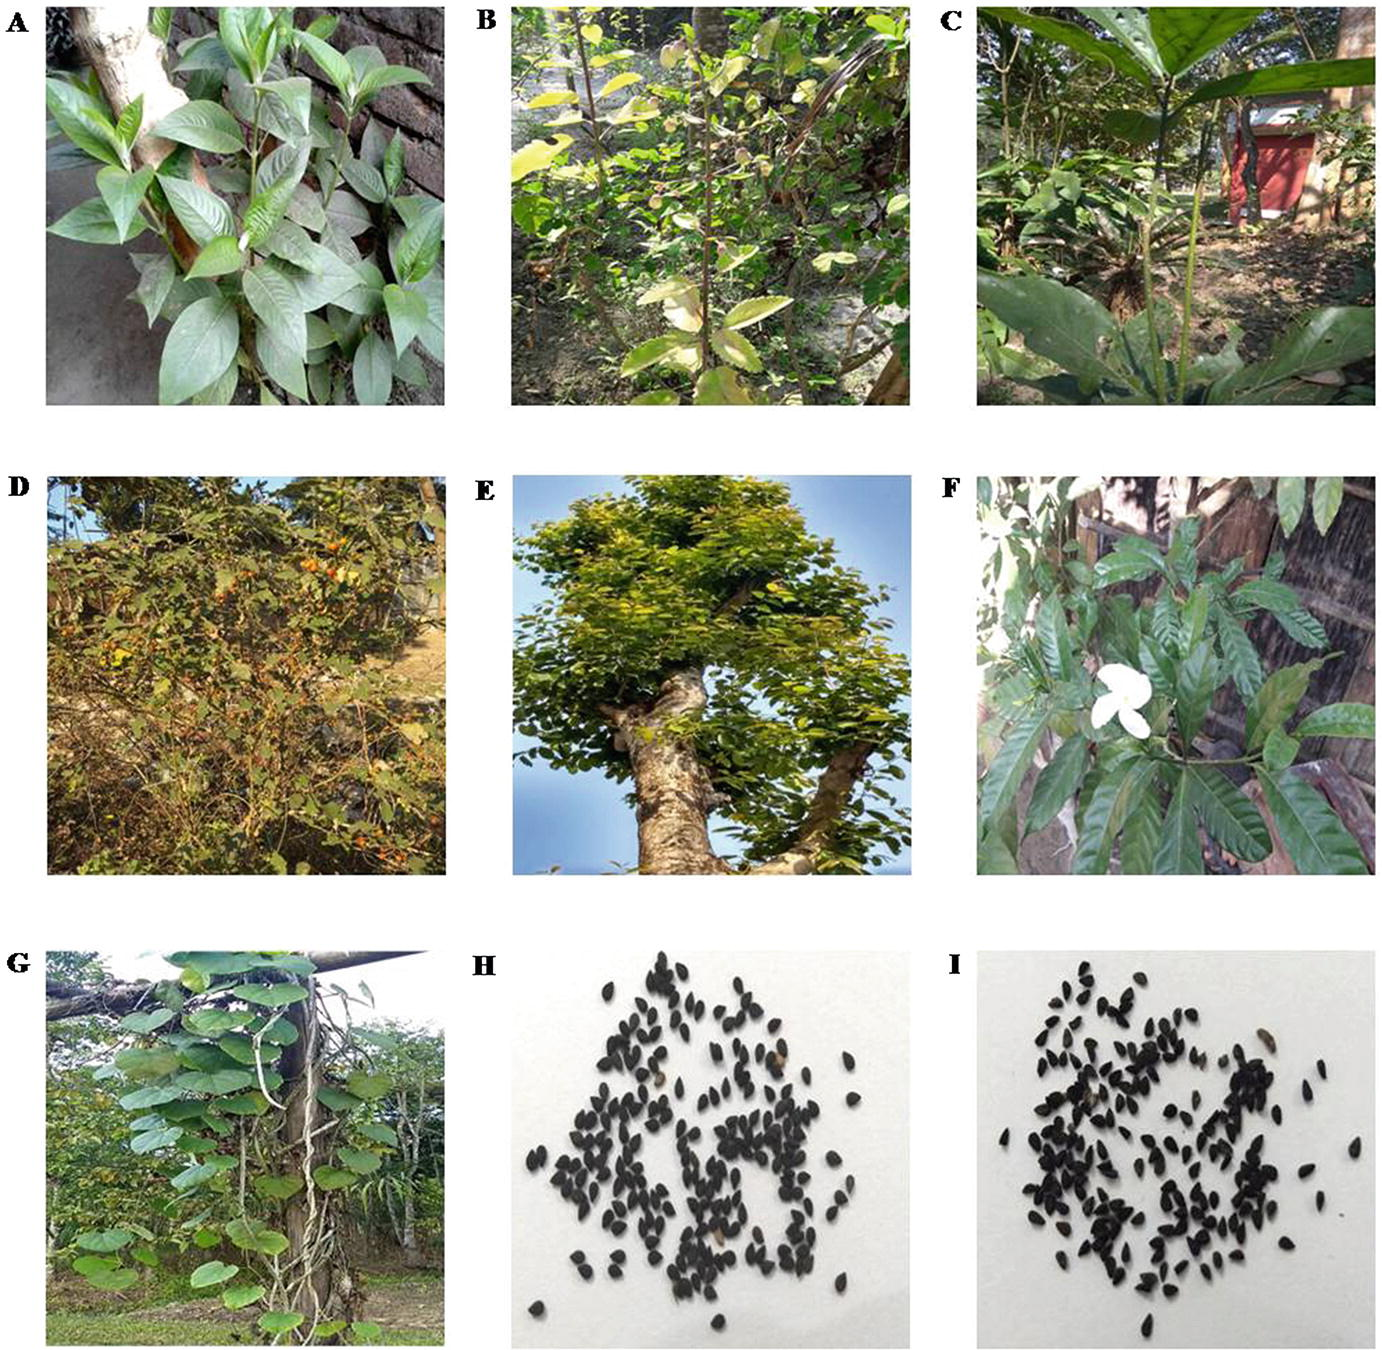 Ethnomedicinal Plants Of North East India As A Potential Target For Drug Discovery Against Type 2 Diabetes Mellitus Springerlink